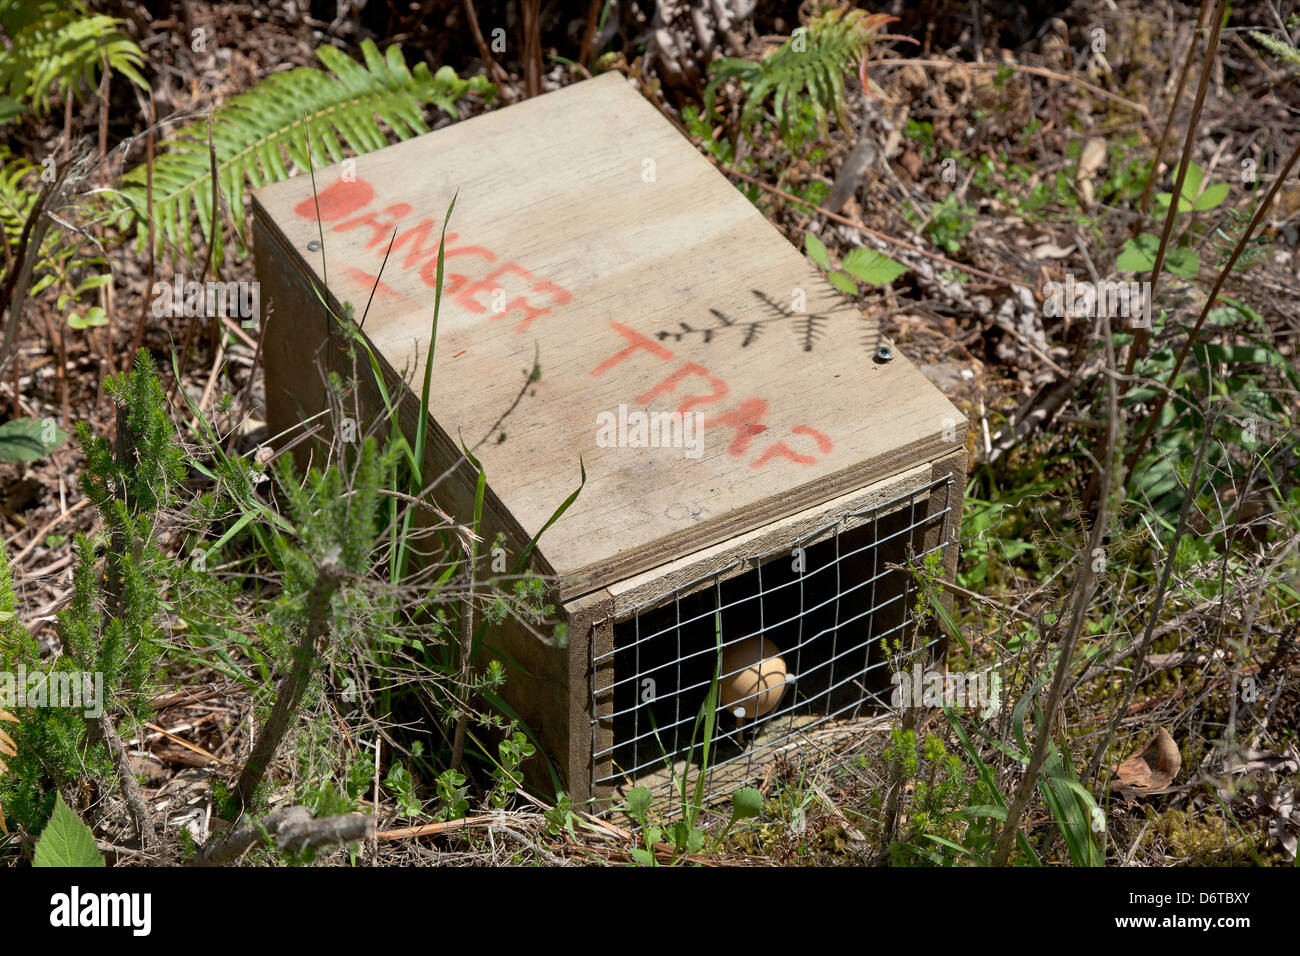 Poison trap for predatorsin the woods, New Zealand - Stock Image